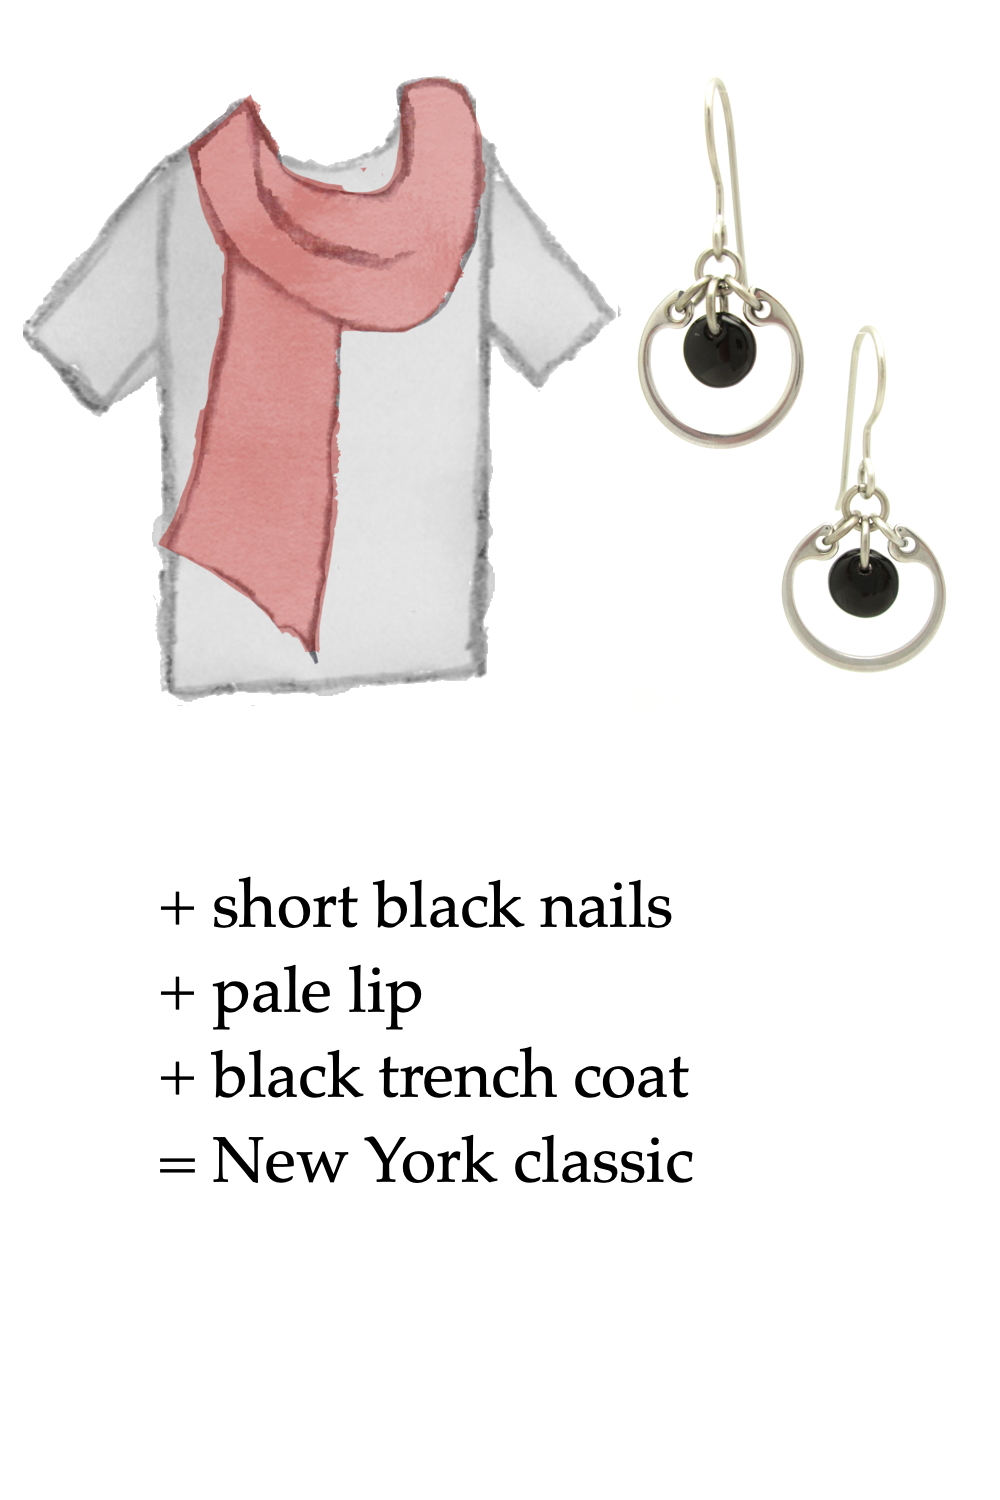 style sketch of a gray tee + pale red scarf+ black modern circle earrings; text says + short black nails + pale lip + black trench coat = New York classic